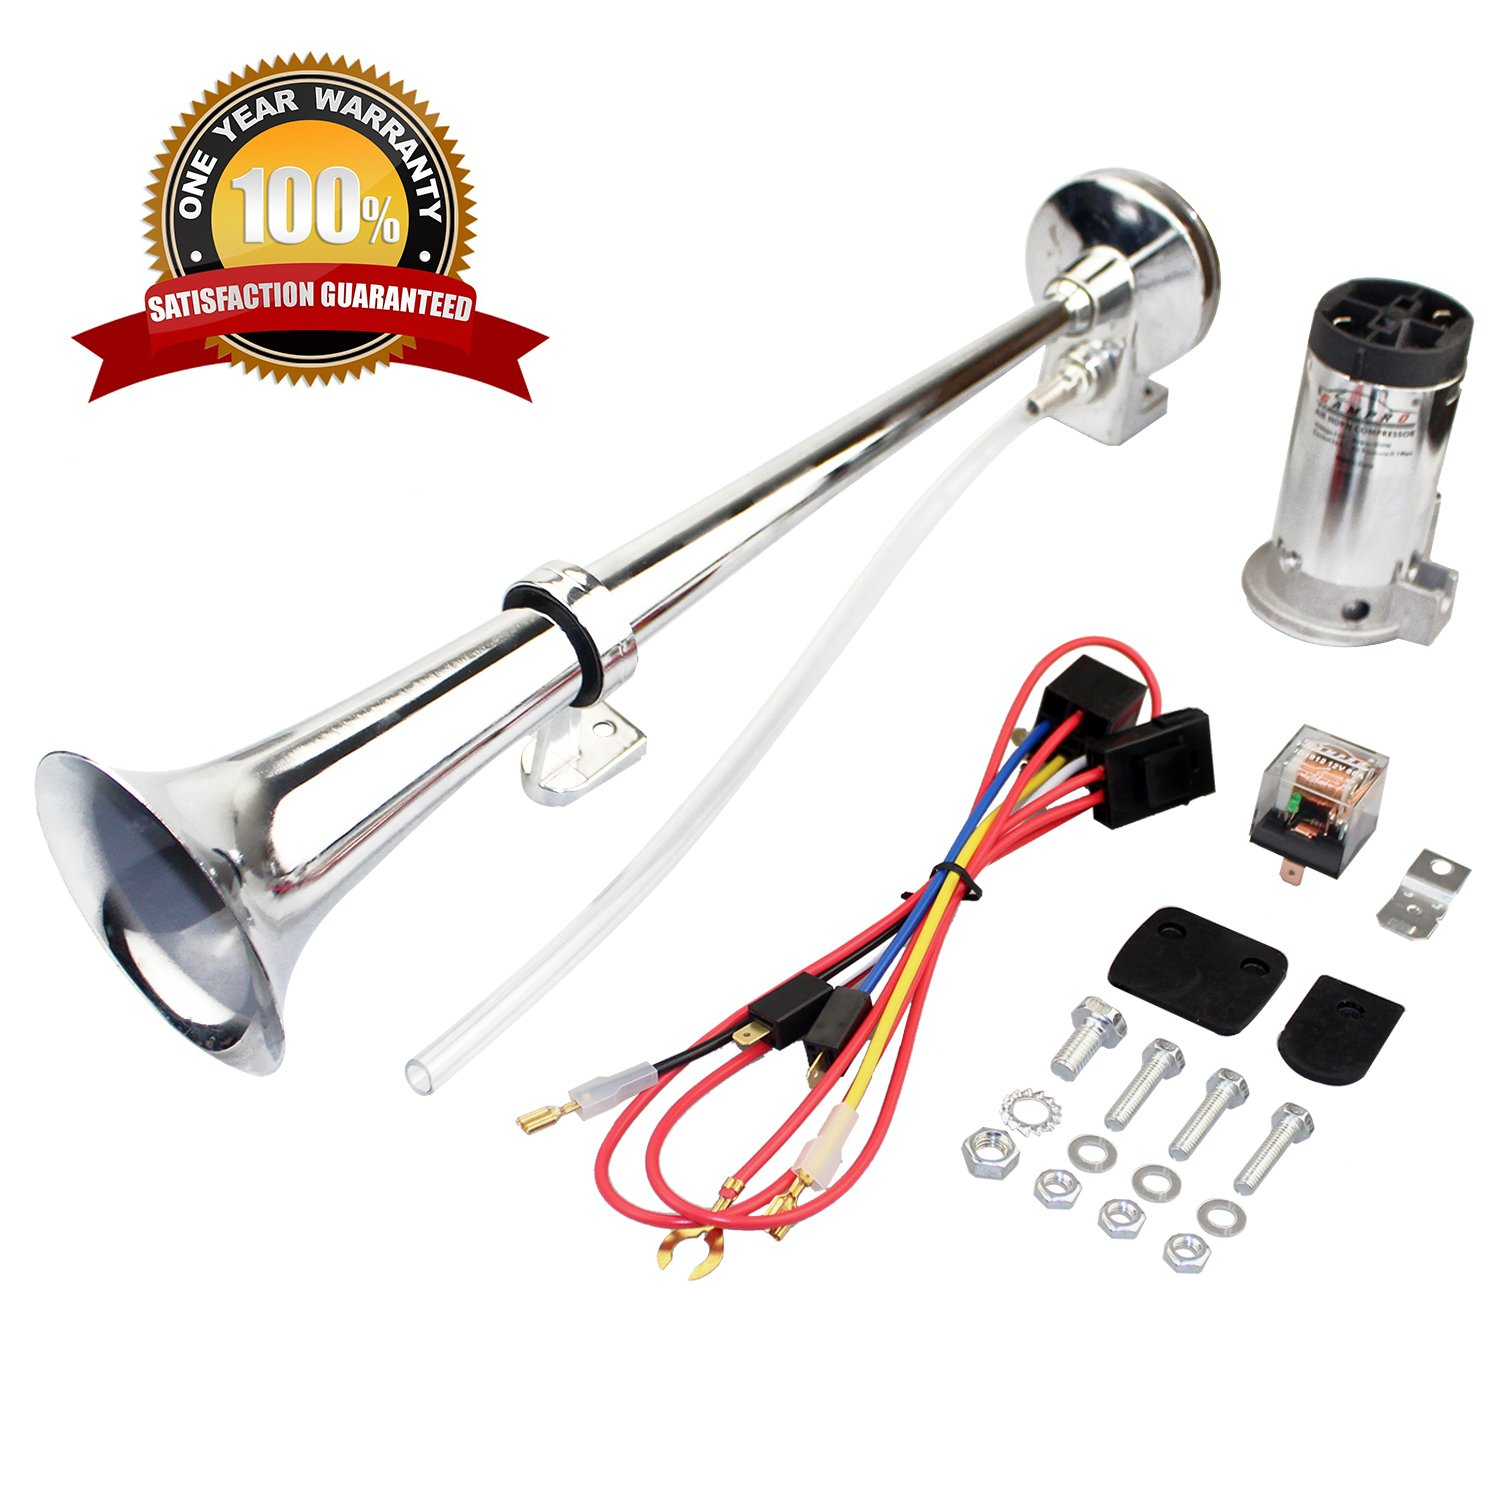 GAMPRO 12V 150db Air Horn, 18 Inches Chrome Zinc Single Trumpet Truck Air Horn with Compressor for Any 12V Vehicles Trucks Lorrys Trains Boats Cars